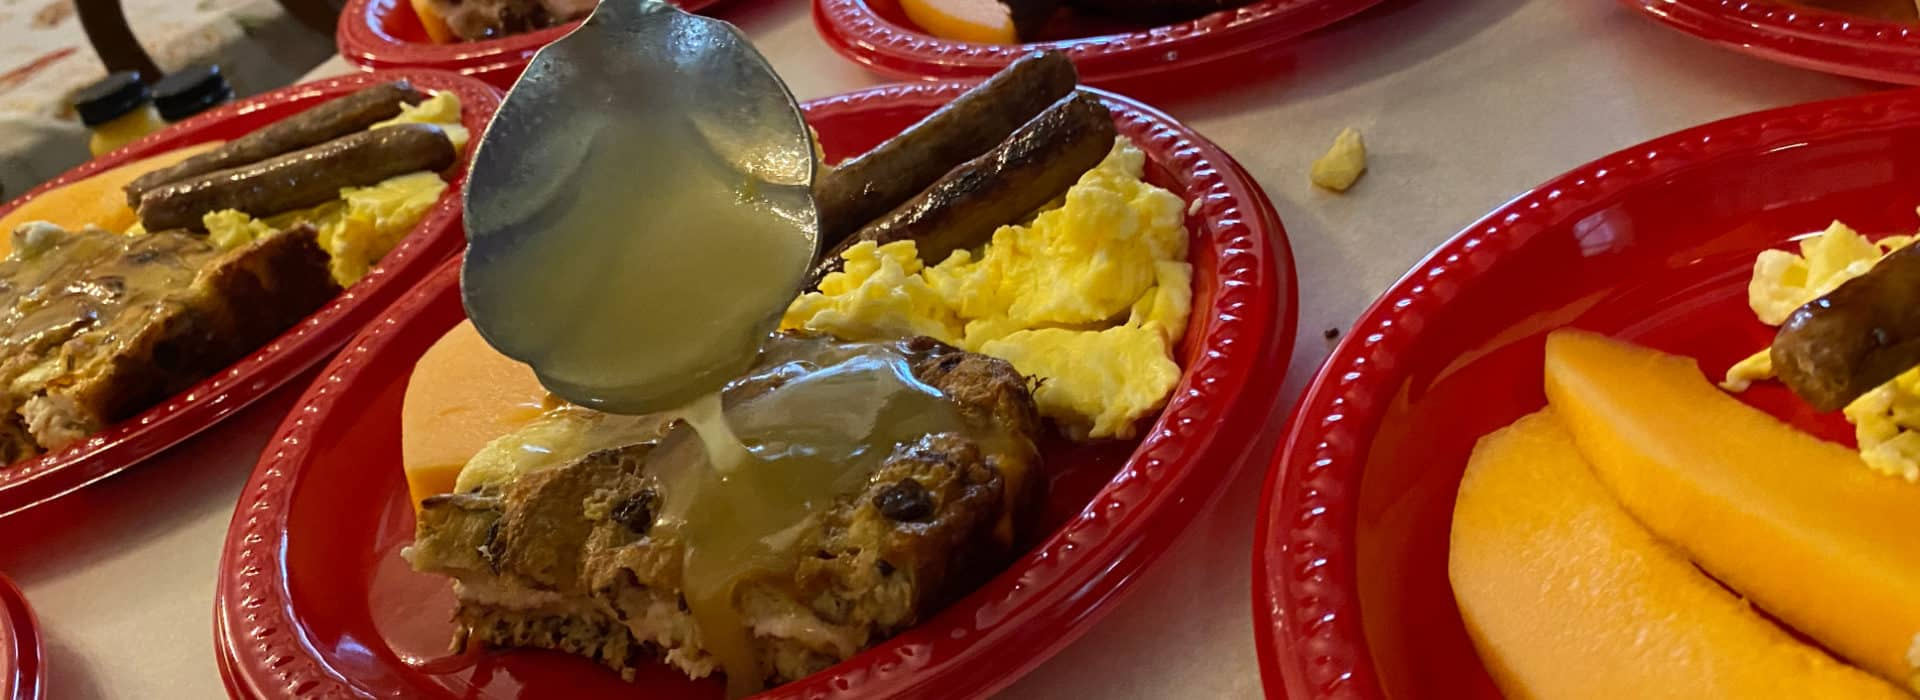 red plate with eggs sausage bread pudding with a spoon pouring sauce over it